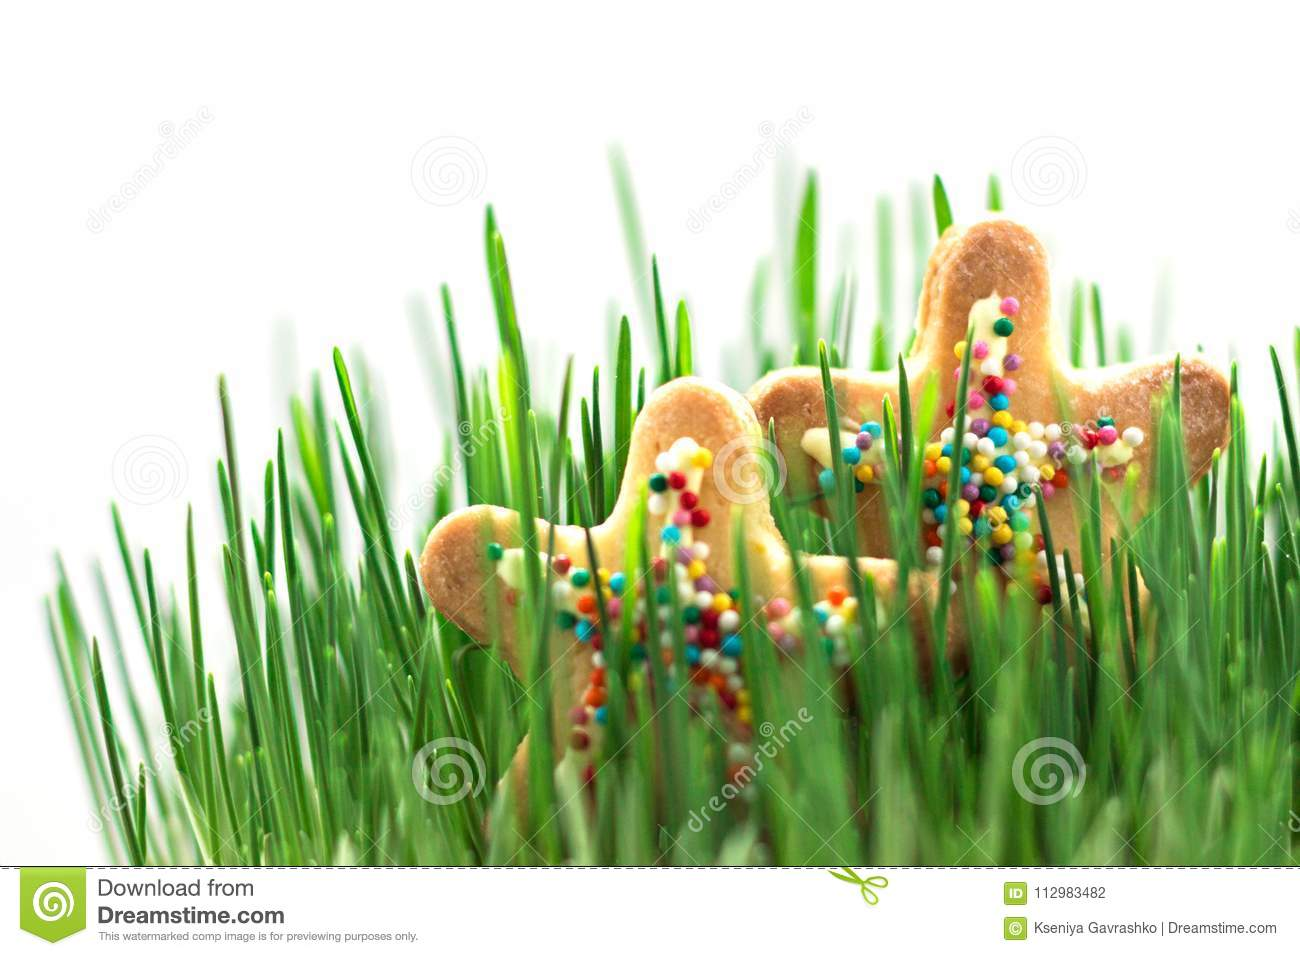 Bright Stars in Juicy Grass. Summer Concept. Holidays